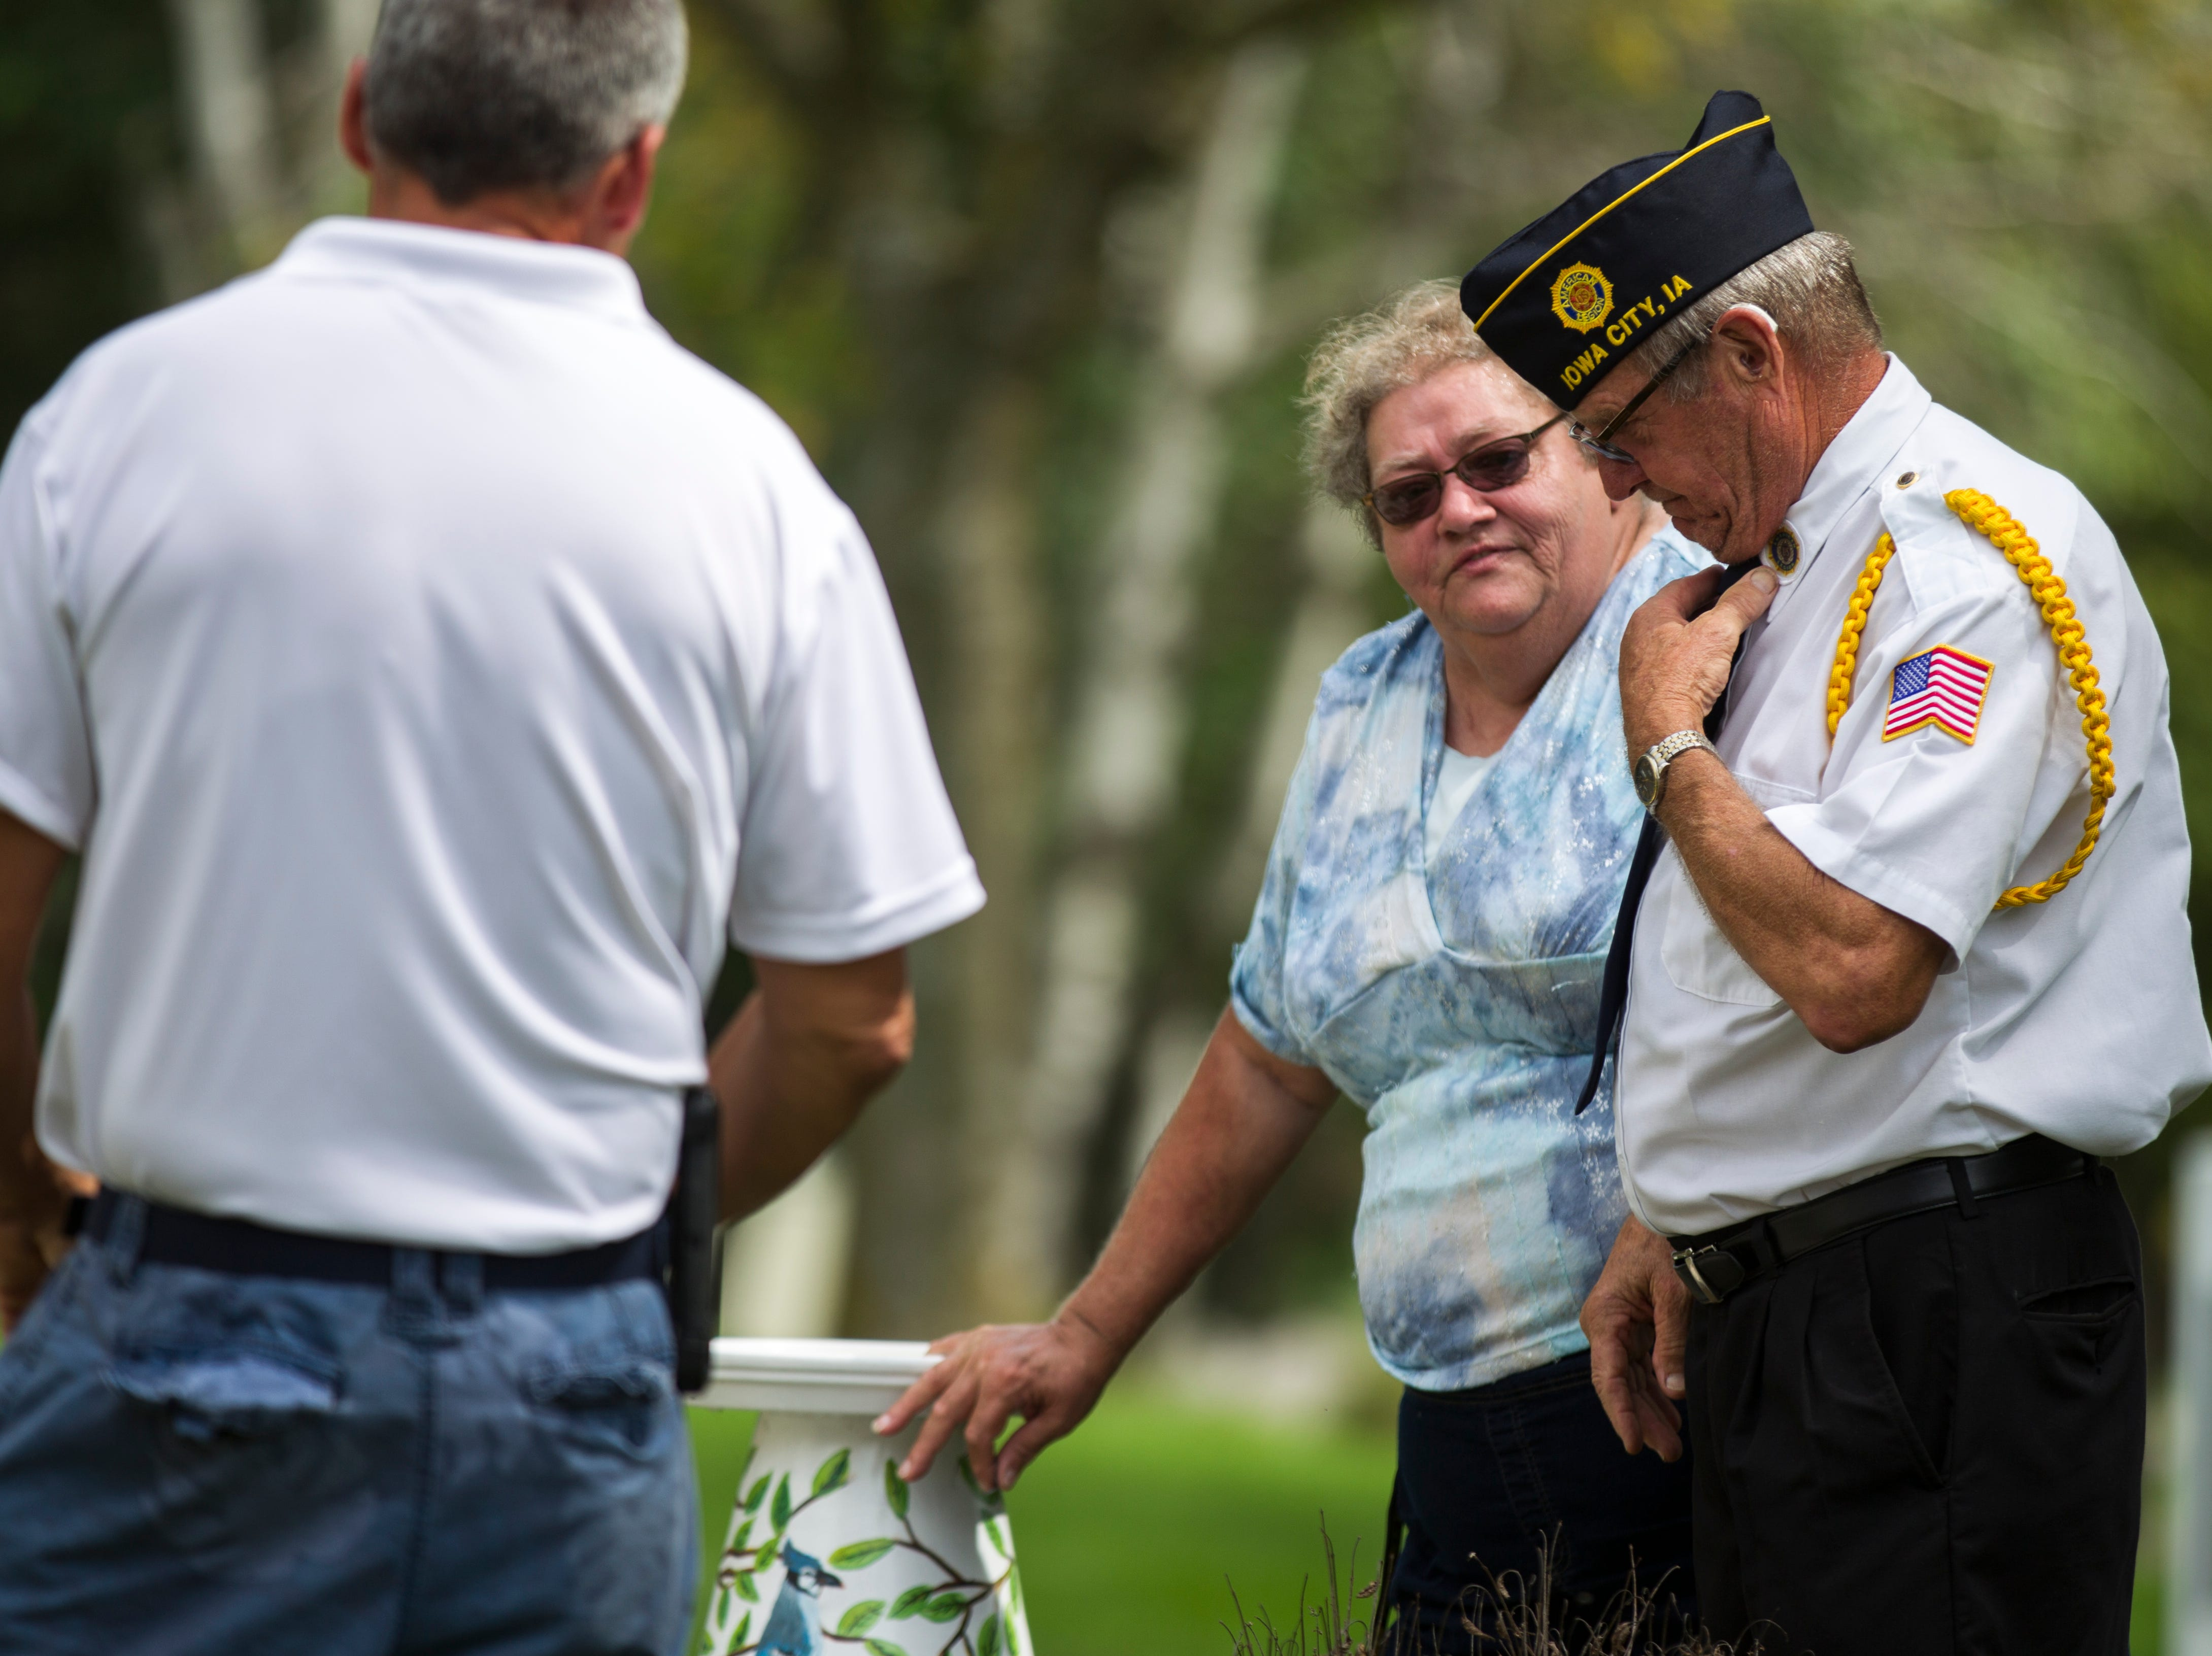 Retired U.S. Navy shipfitter second class Gary Haman (right) speaks with Carol Larson, Autumn Park Apartment resident manager, during a dedication ceremony on Monday, Sept. 3, 2018, at the Autumn Park Apartments in Iowa City. Haman served in the Navy during Vietnam and is a current member of the Iowa City American Legion Post 17.